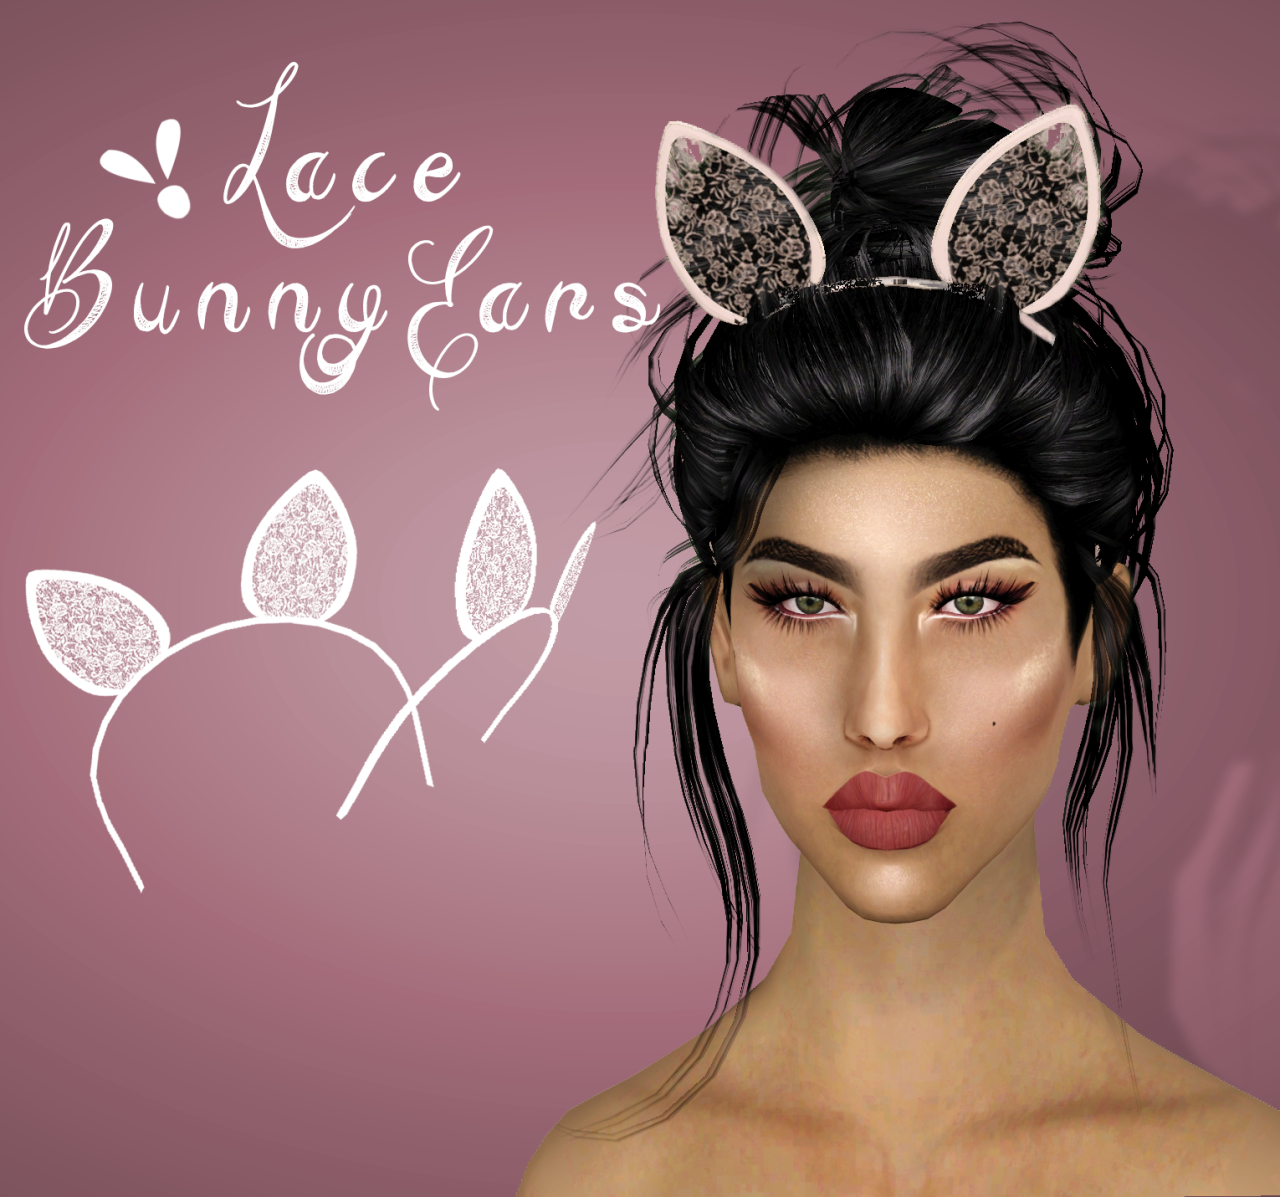 Lace Bunny Ears by vittleruniverse